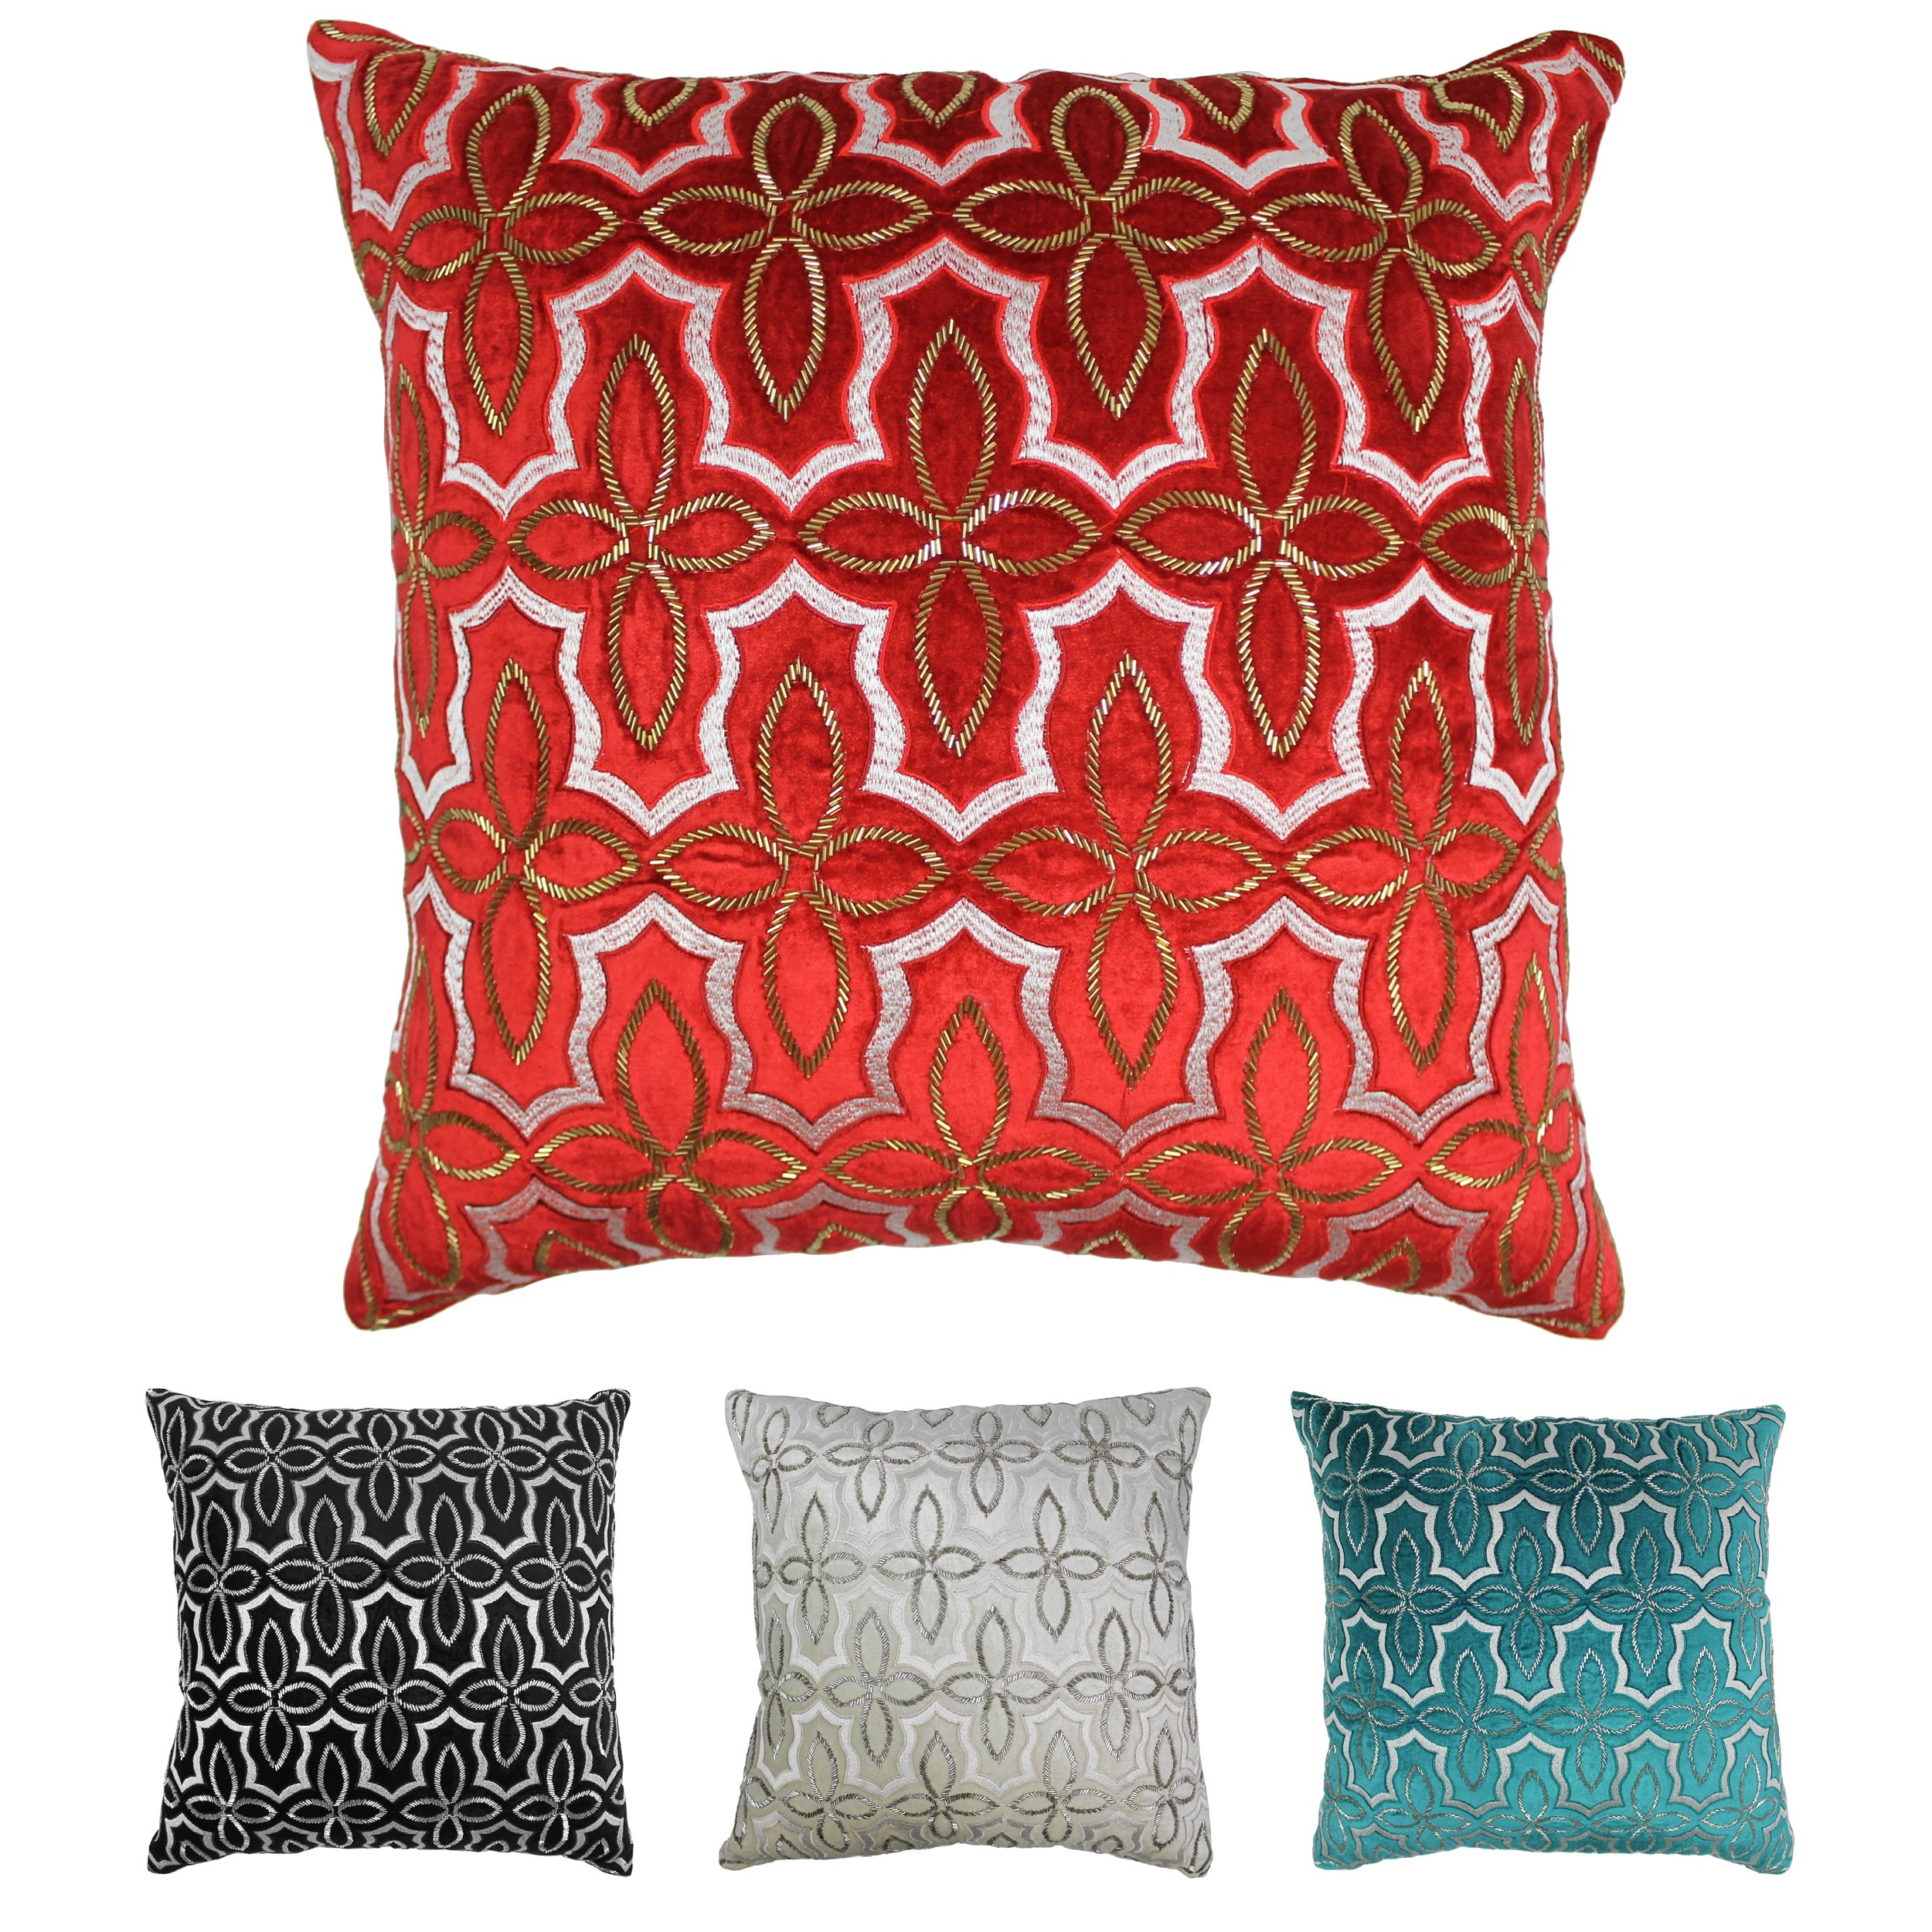 21 Inch Throw Pillow Covers : Throw Pillows For Less Overstock.com